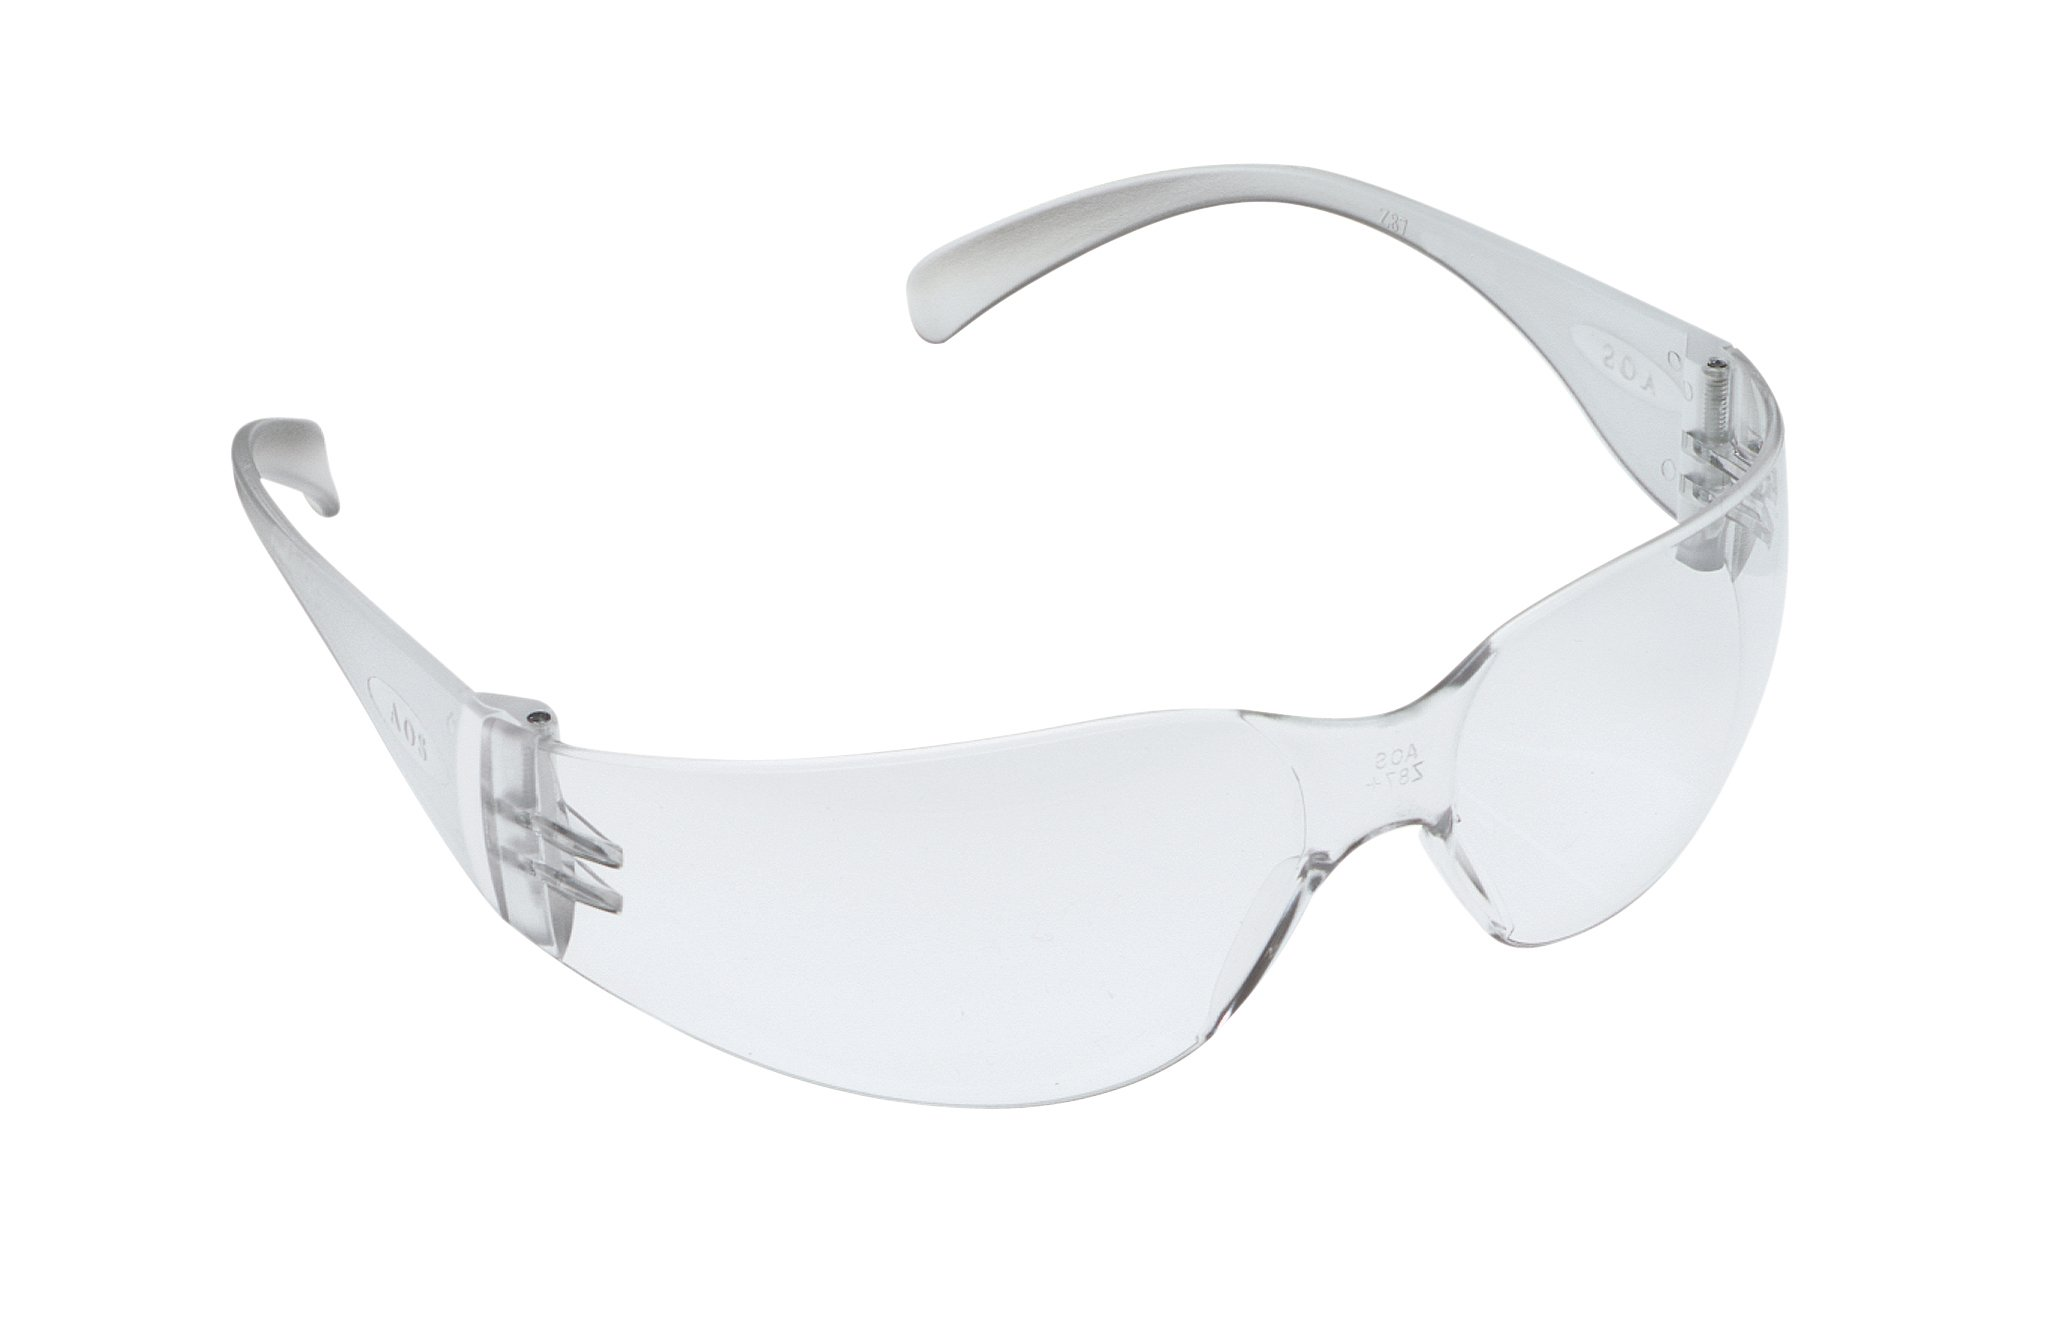 3M Virtua Protective Eyewear, 11228-00000-100 Clear Uncoated Lens, Clear Temple  (Pack of 100)